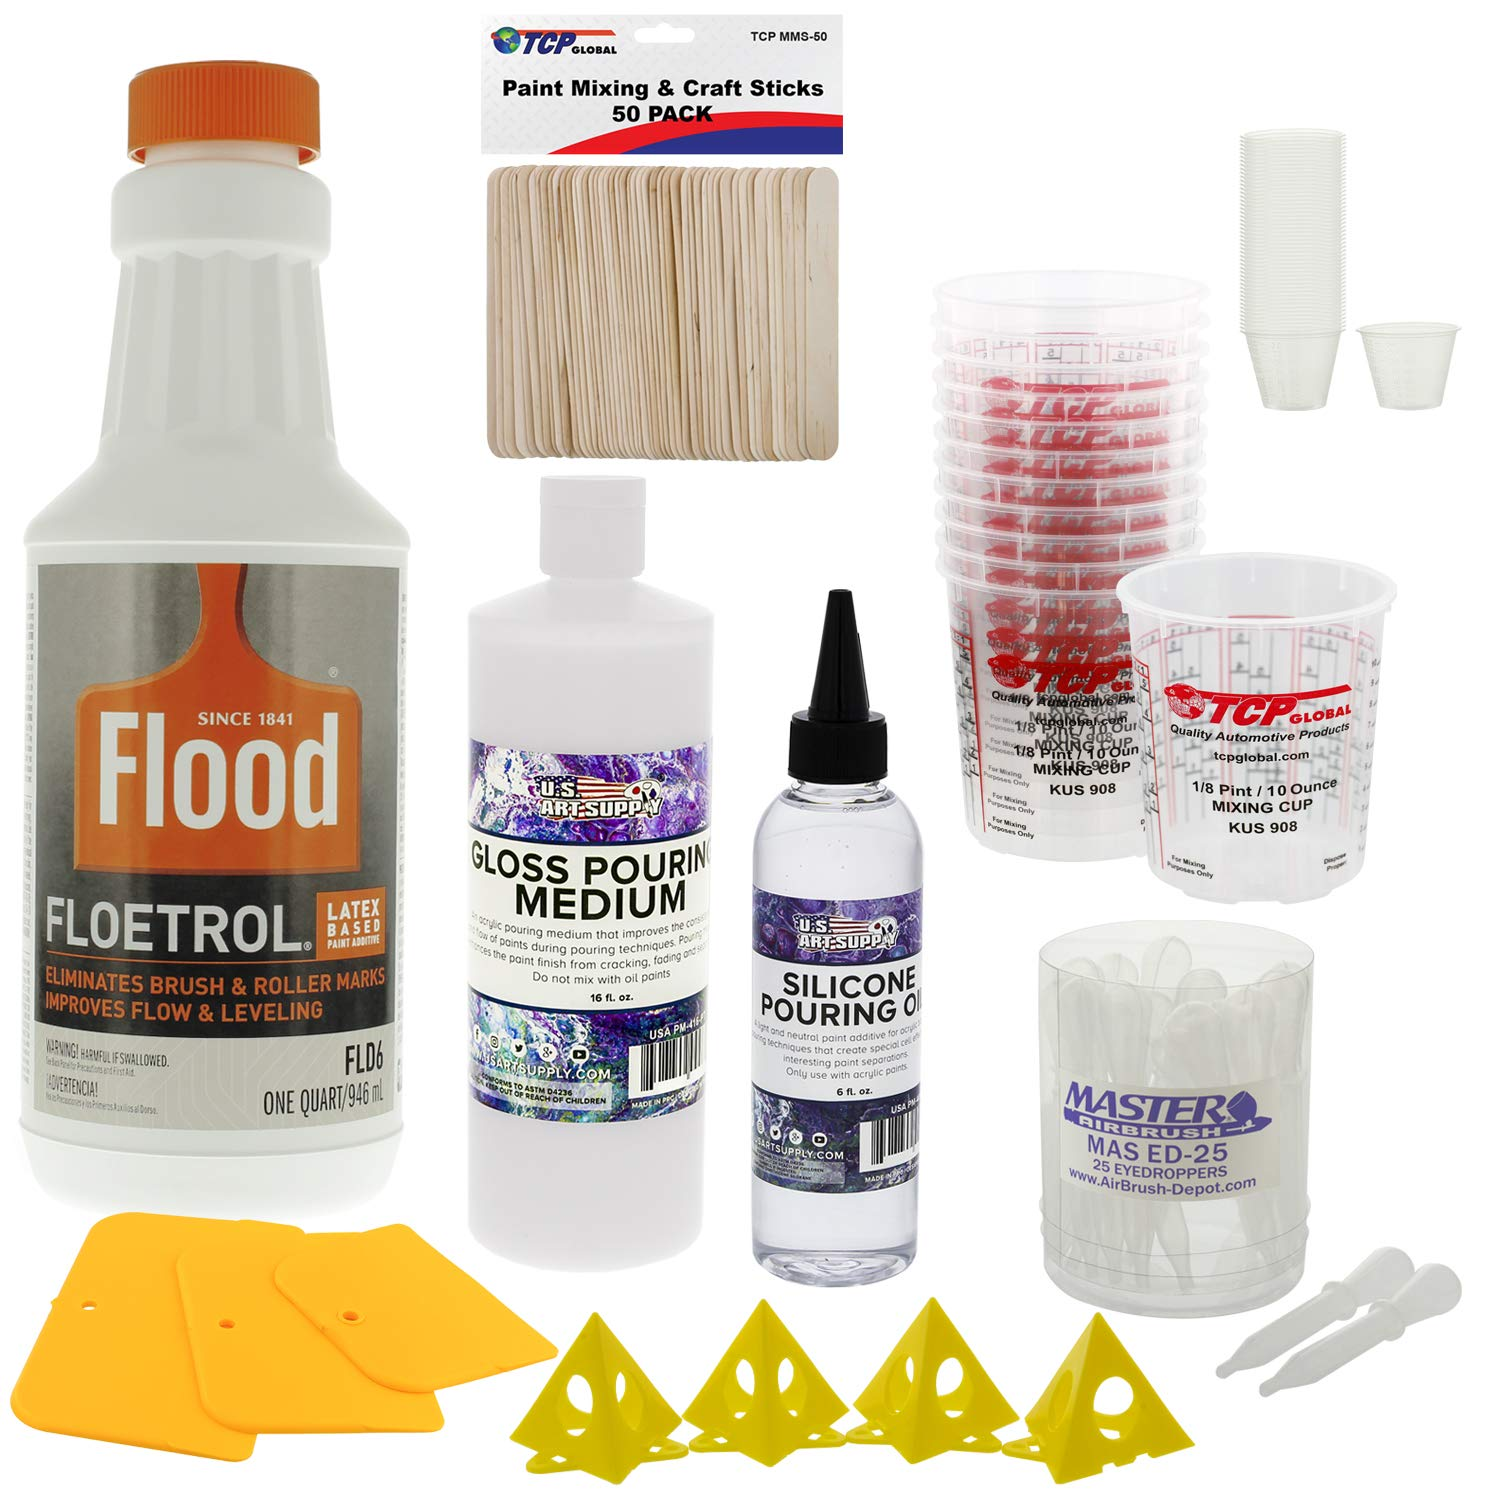 U.S. Art Supply - 1 Quart Floetrol Additive Pouring Supply Paint Medium Deluxe Kit for Mixing, Stain, Epoxy, Resin - Silicone Oil, Plastic Cups, Mini Painting Stands, Sticks, Spreaders